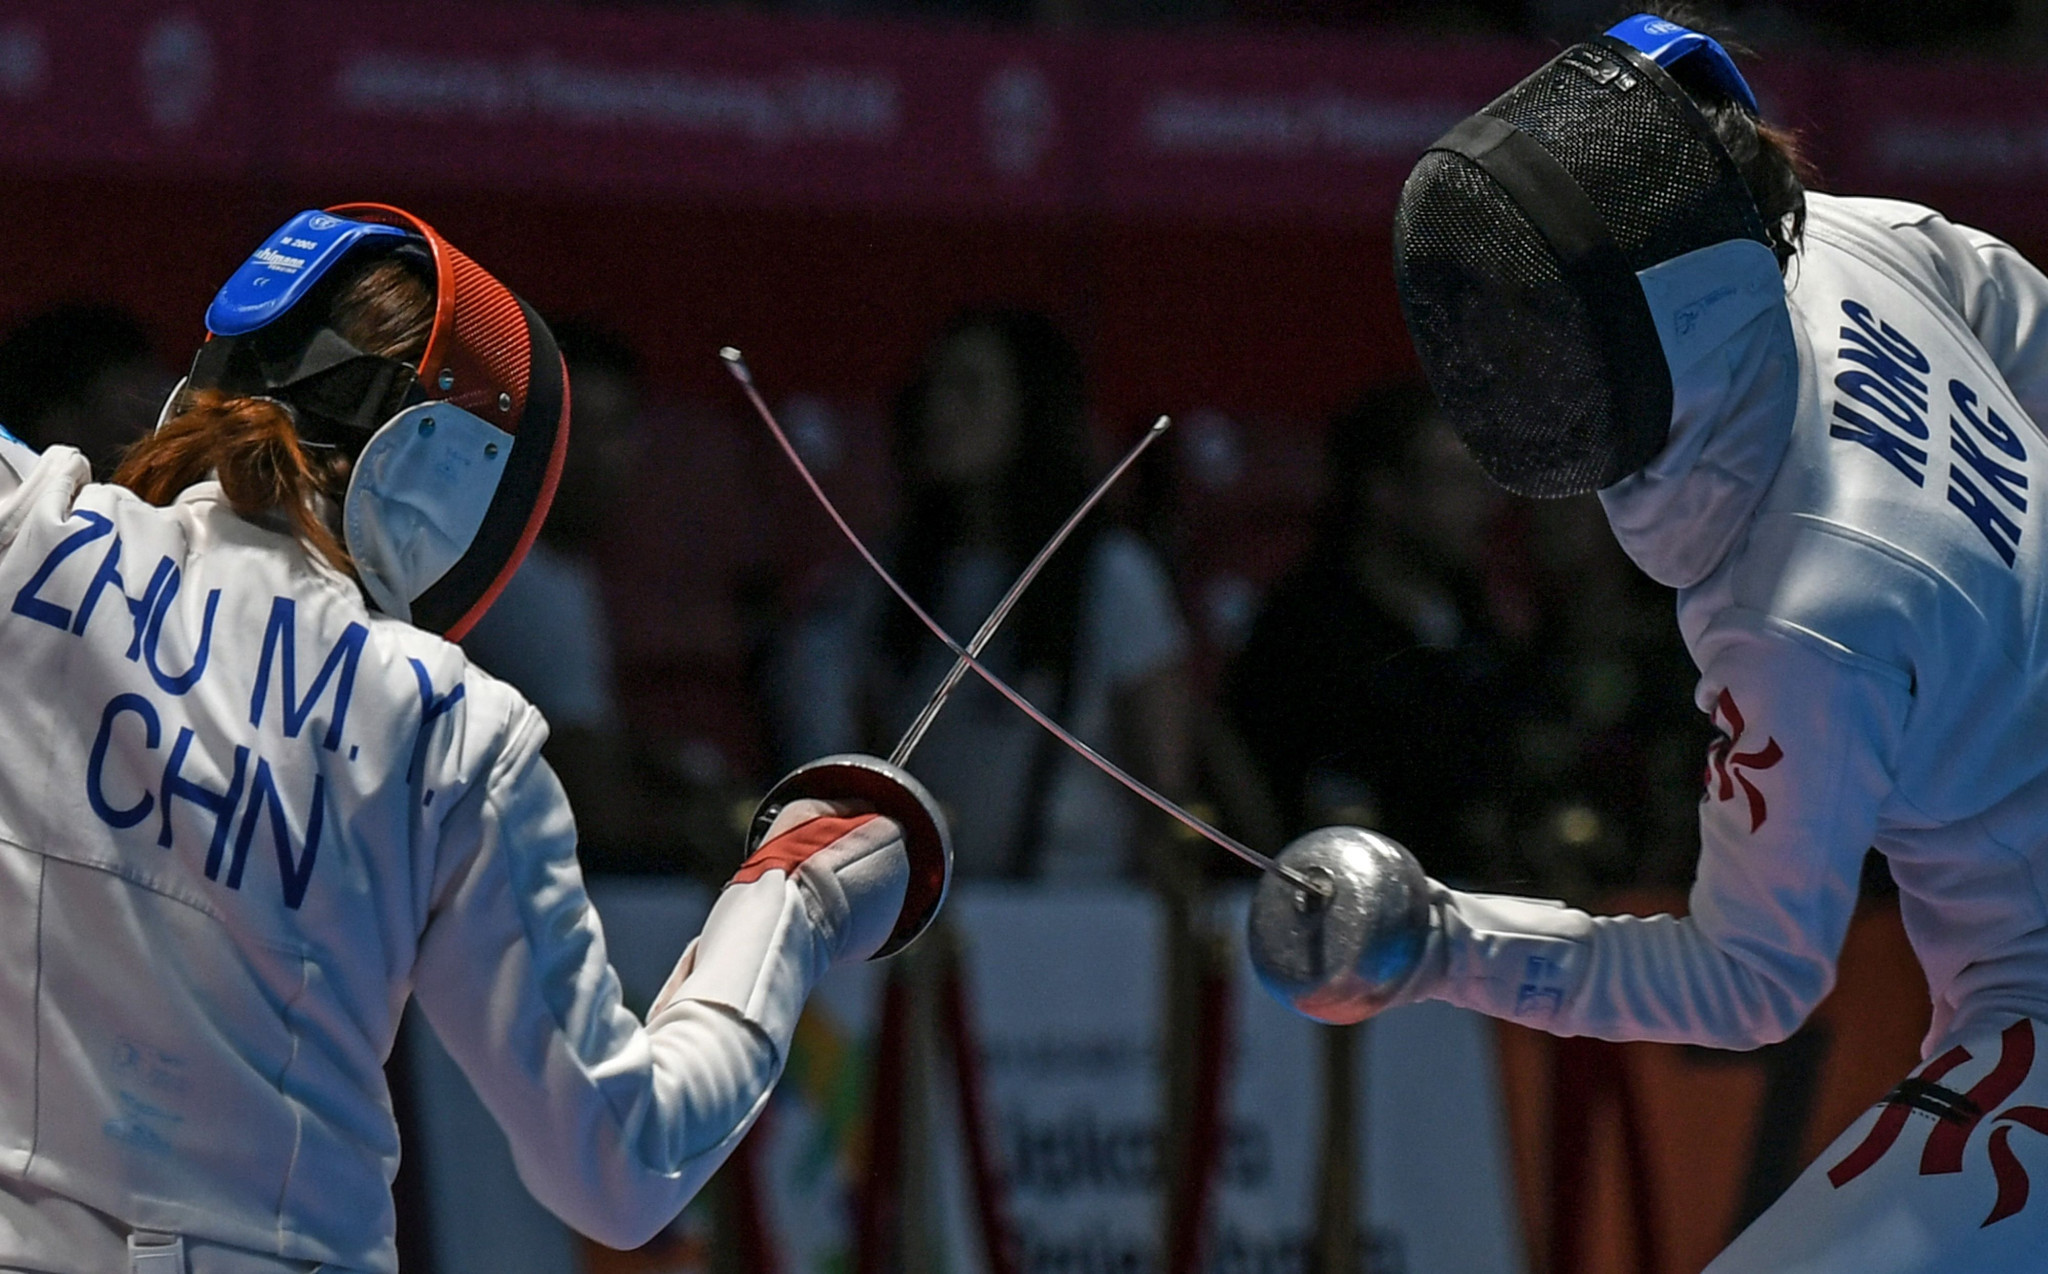 China's Zhu Mingye came out on top in the women's épée event ©Getty Images